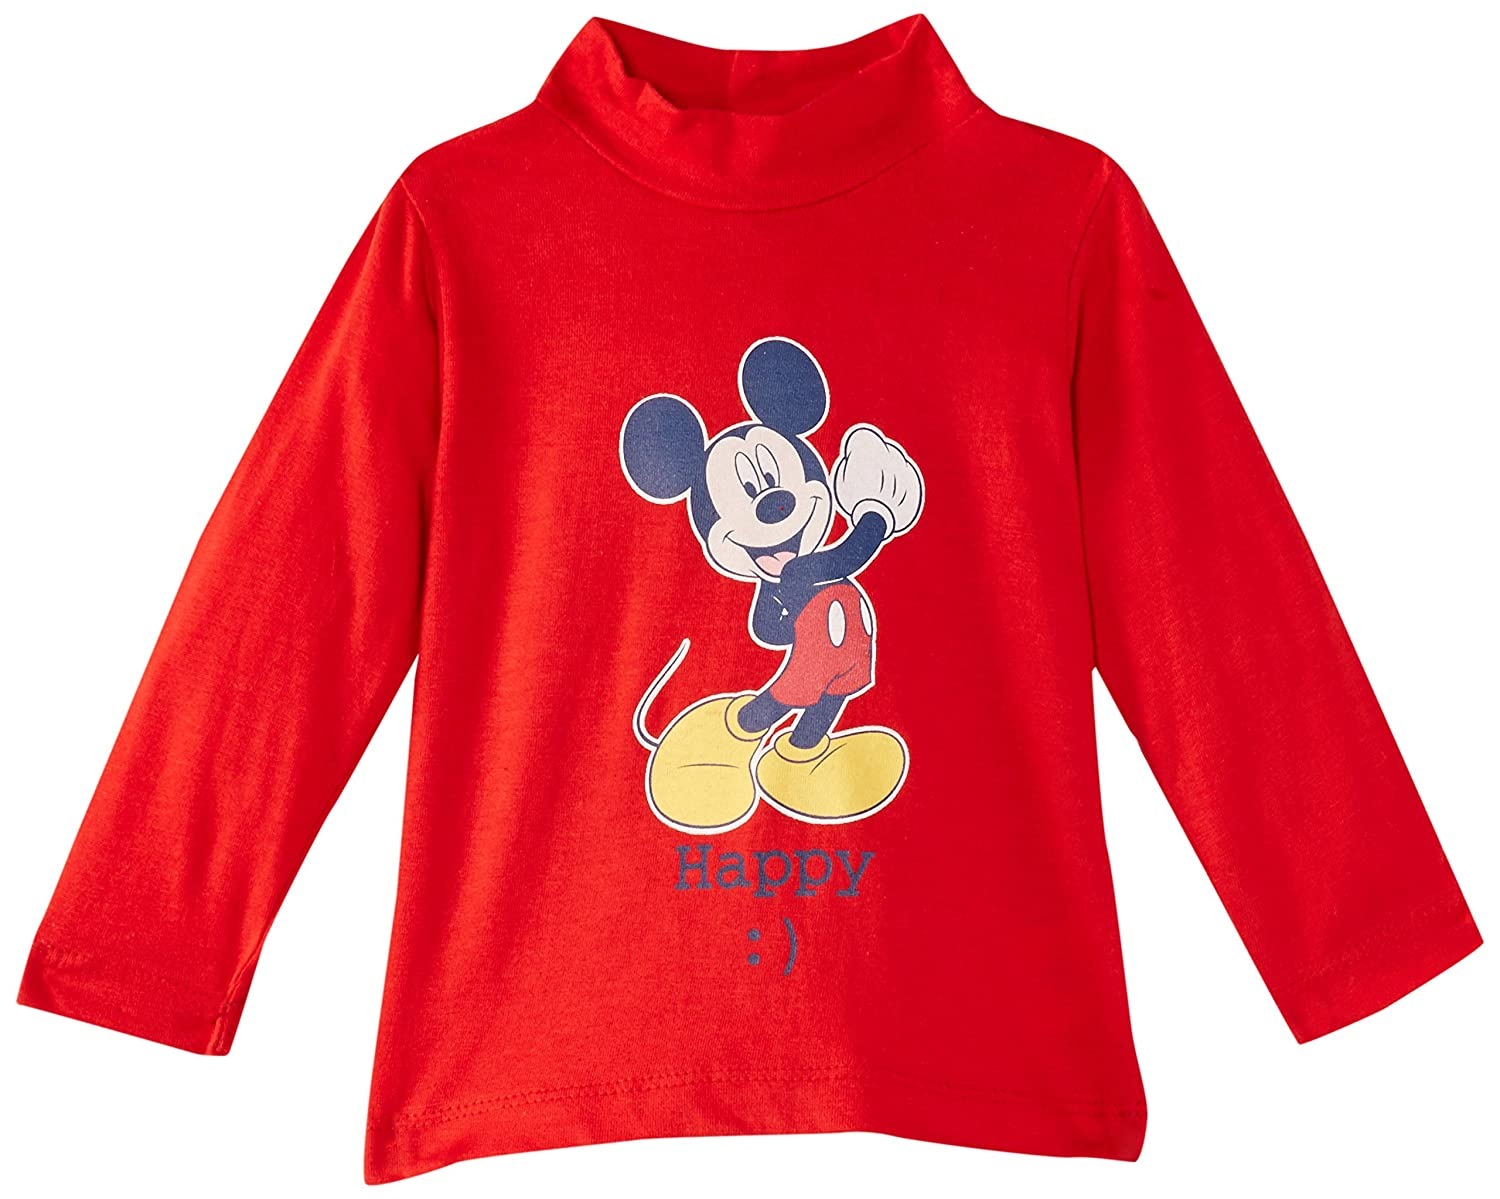 Disney Mickey Mouse NH0073, Sudadera para Niños, Rot (True Red/Blue) 1-3 Meses (56/62): Amazon.es: Ropa y accesorios